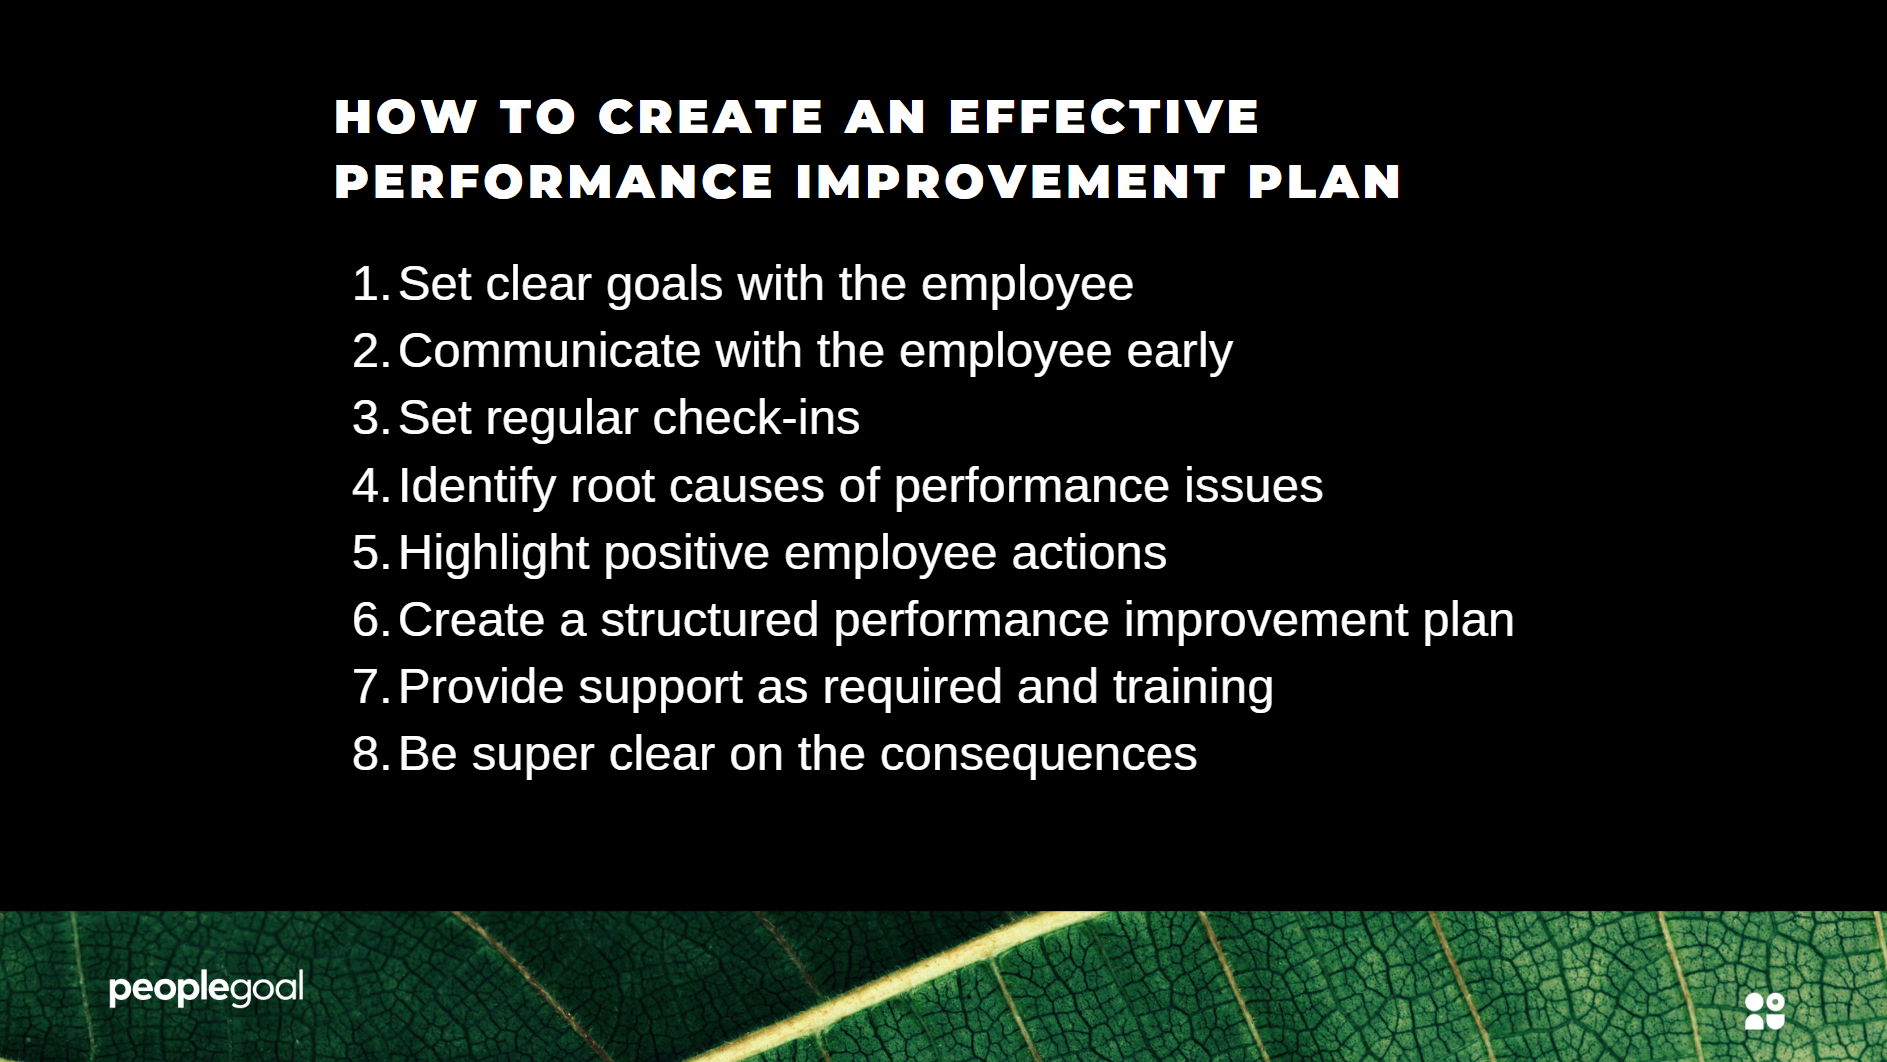 Performance Improvement Plan Effectiveness